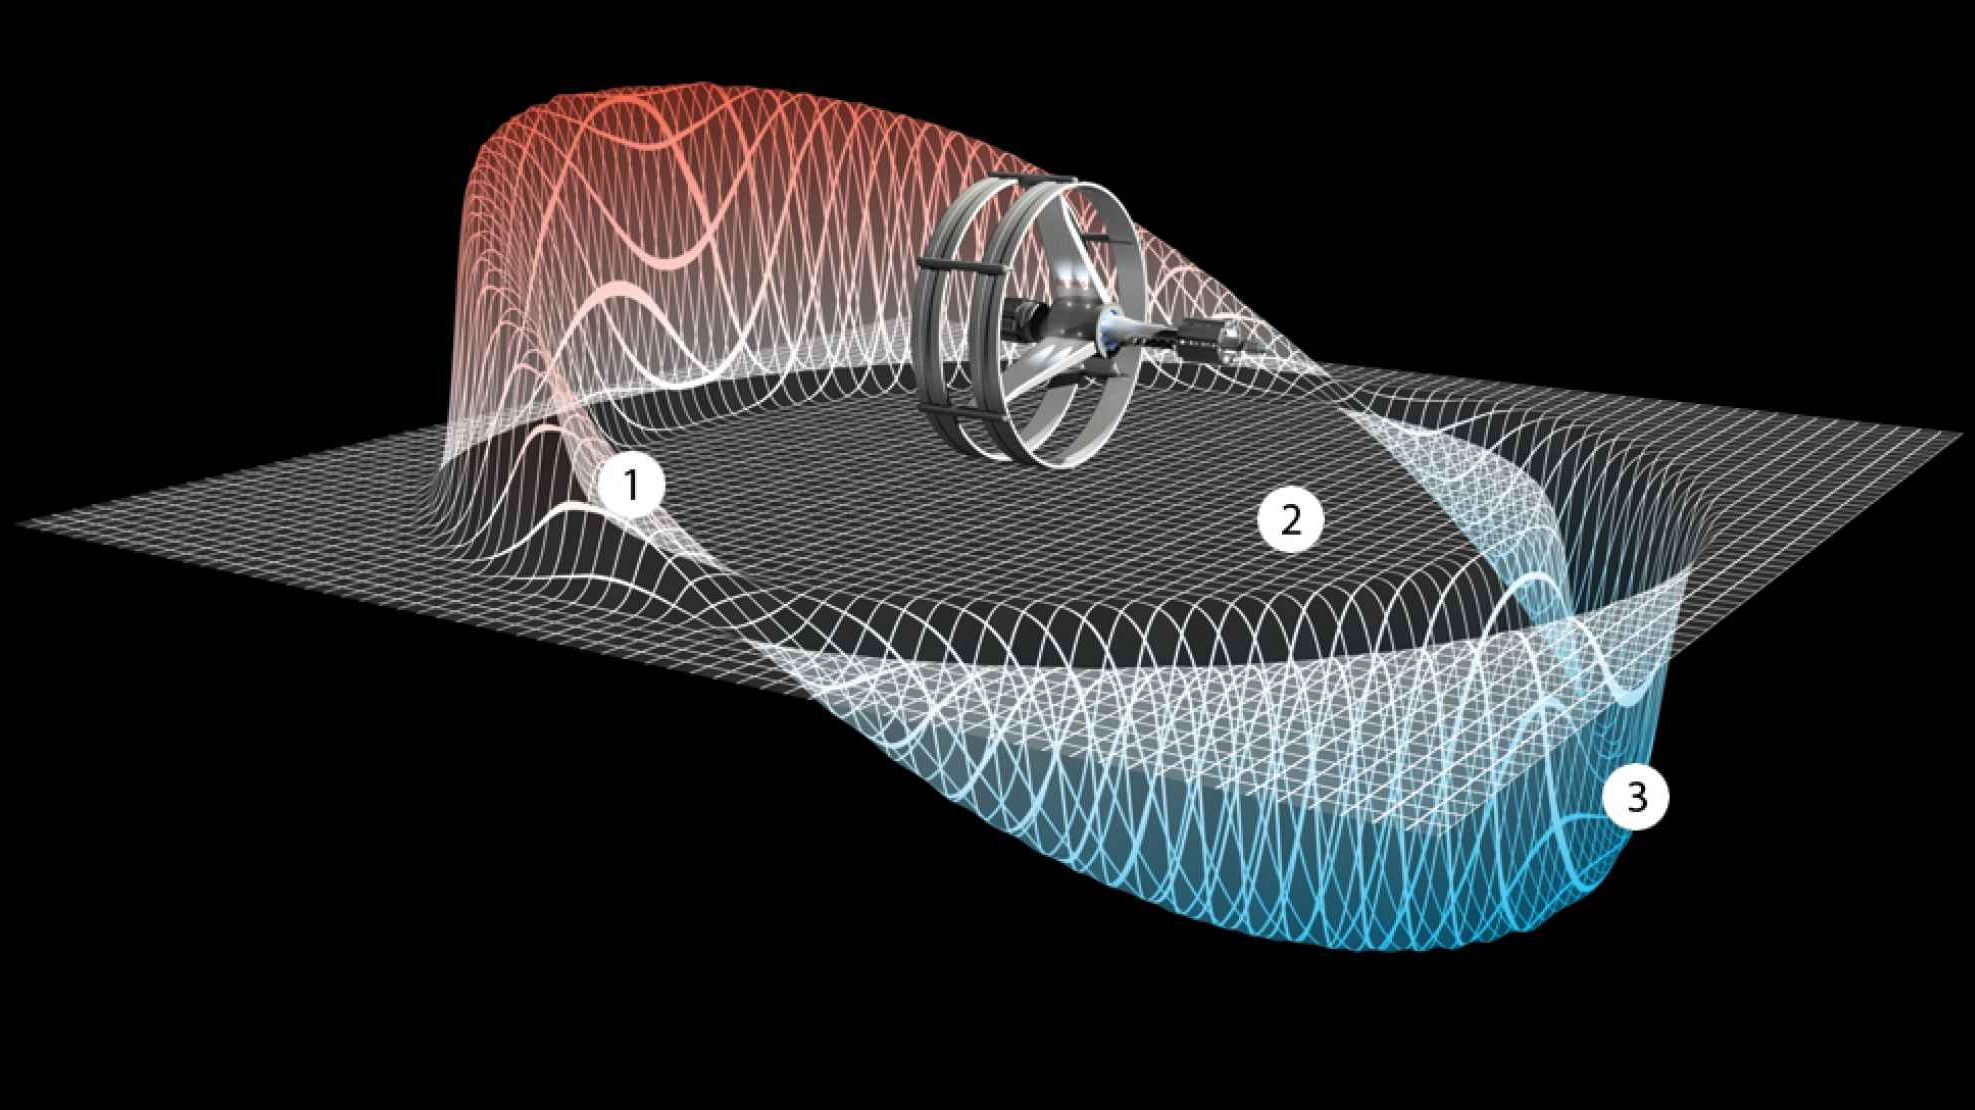 Scientists Switch To Warp Drive As 'Zero Point' Energy Is Tapped